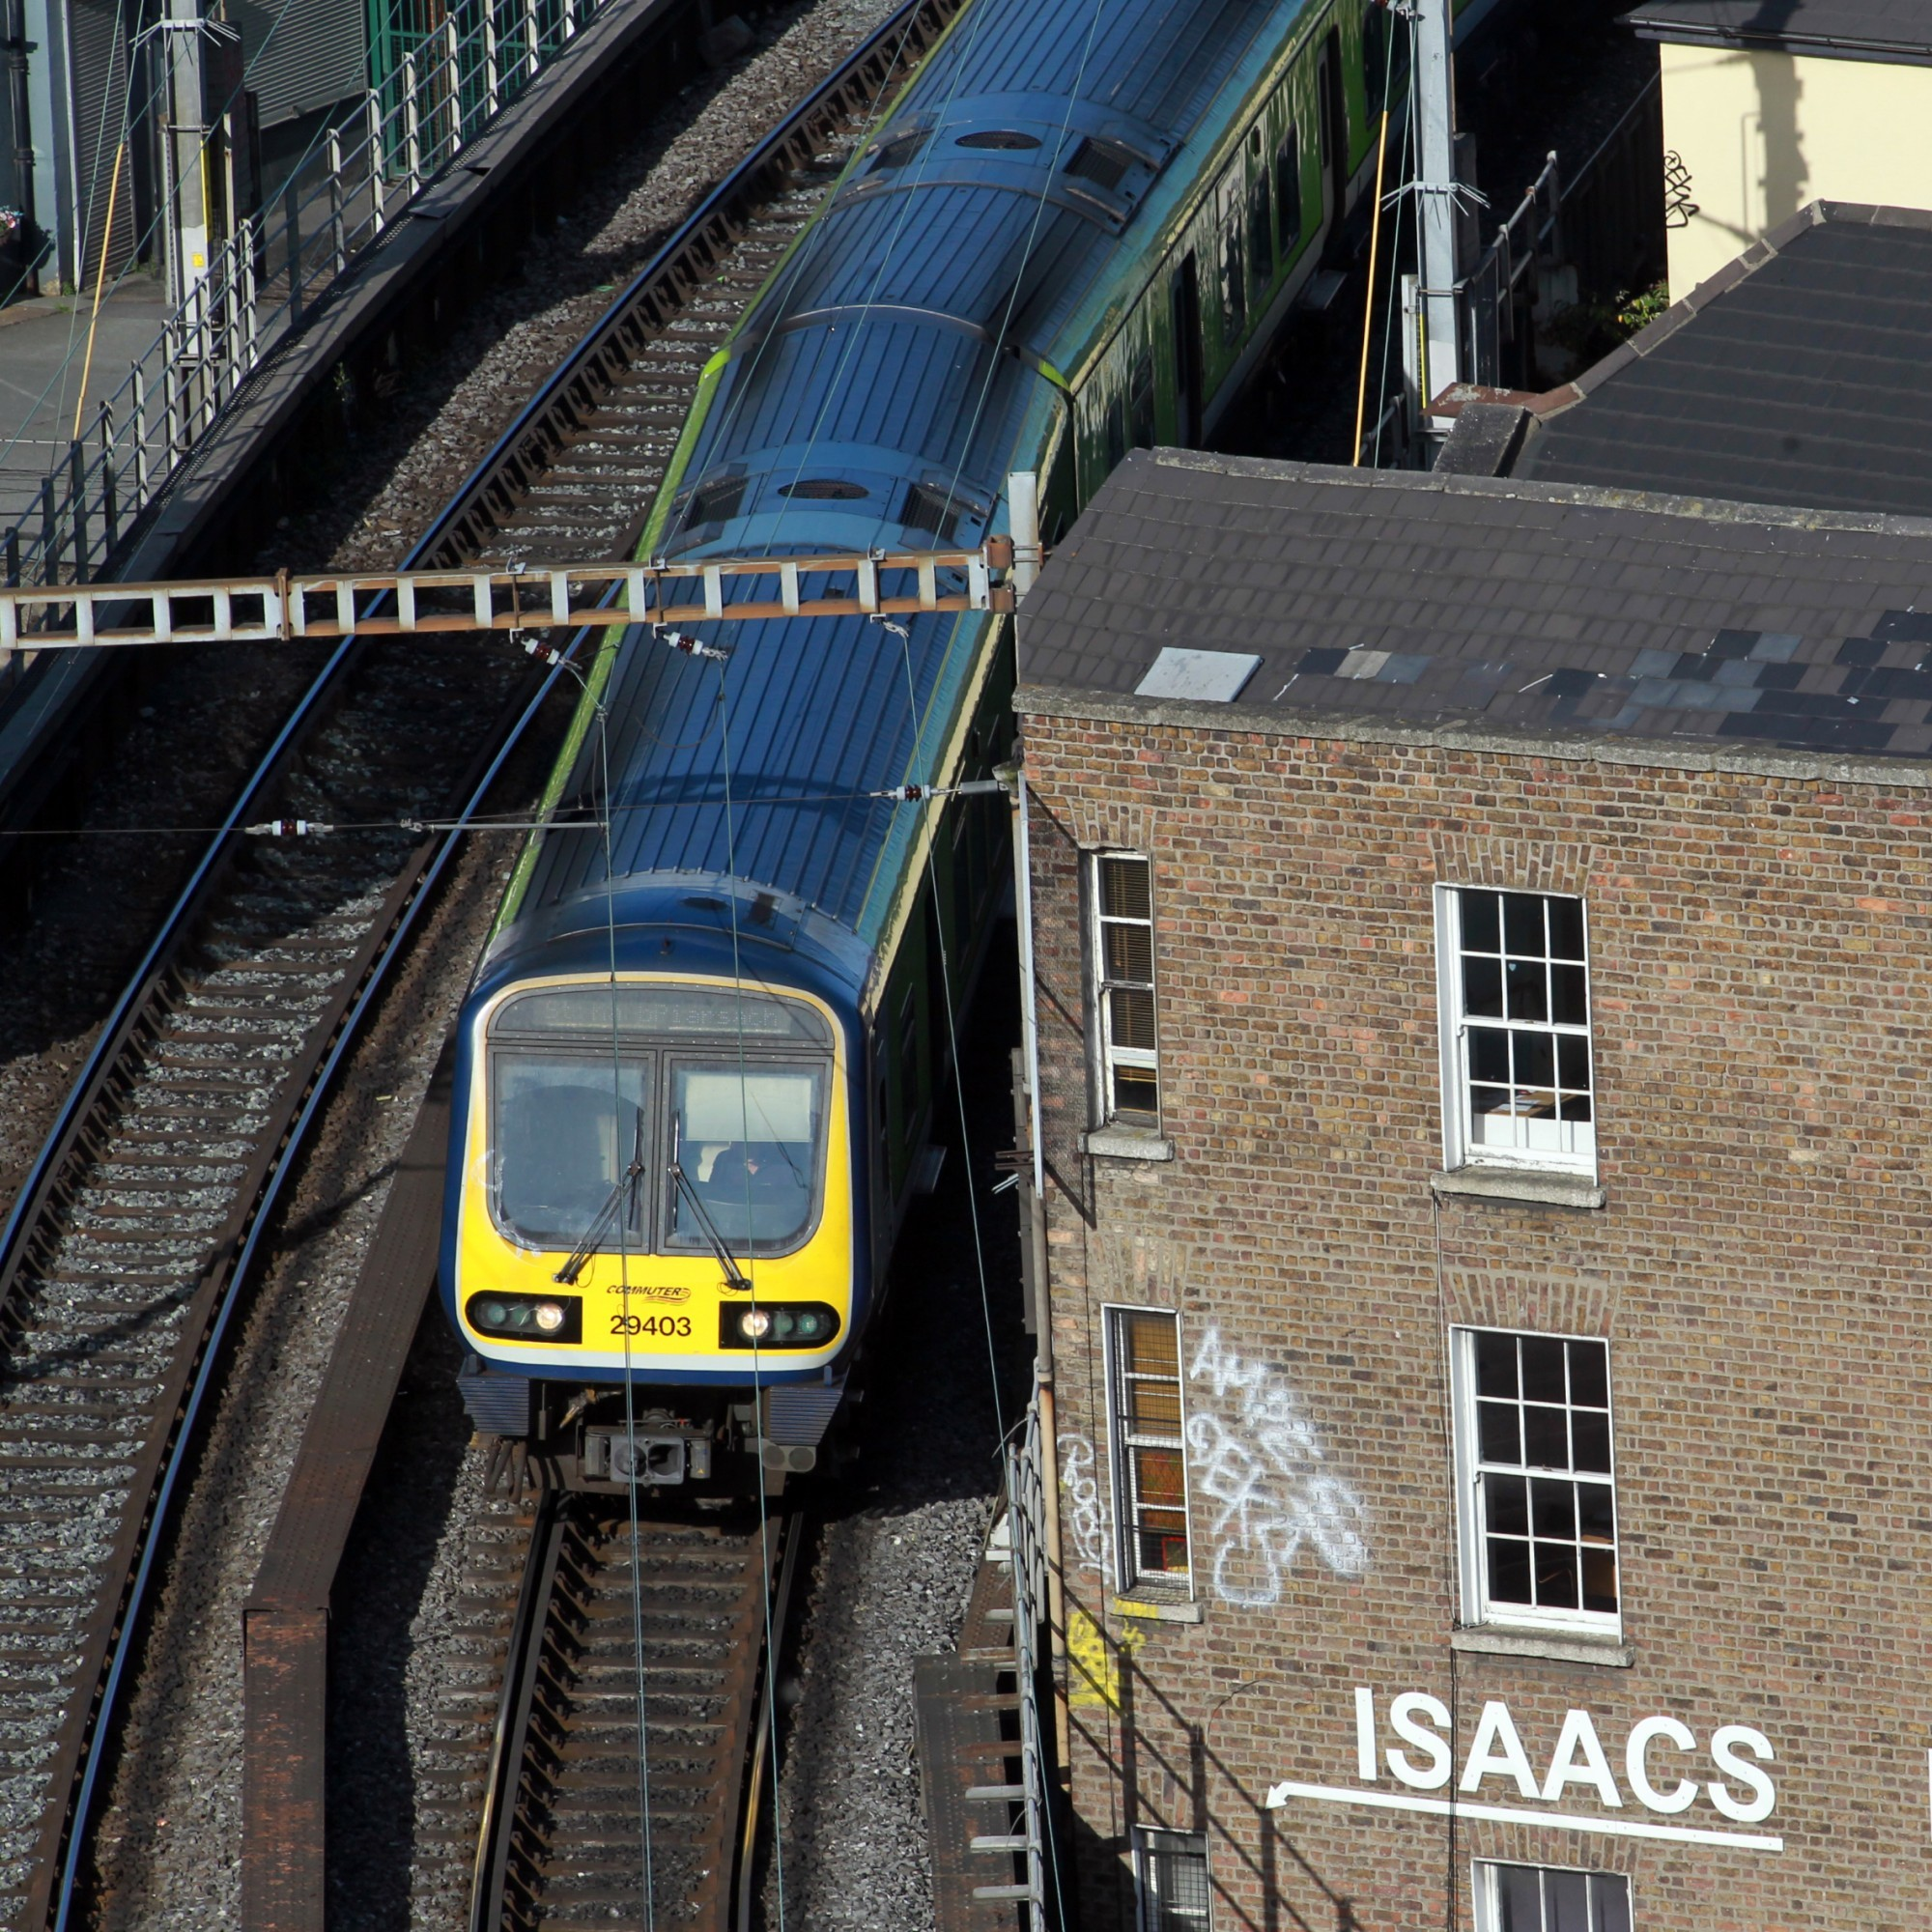 Taking the train this weekend? There are some major timetable changes